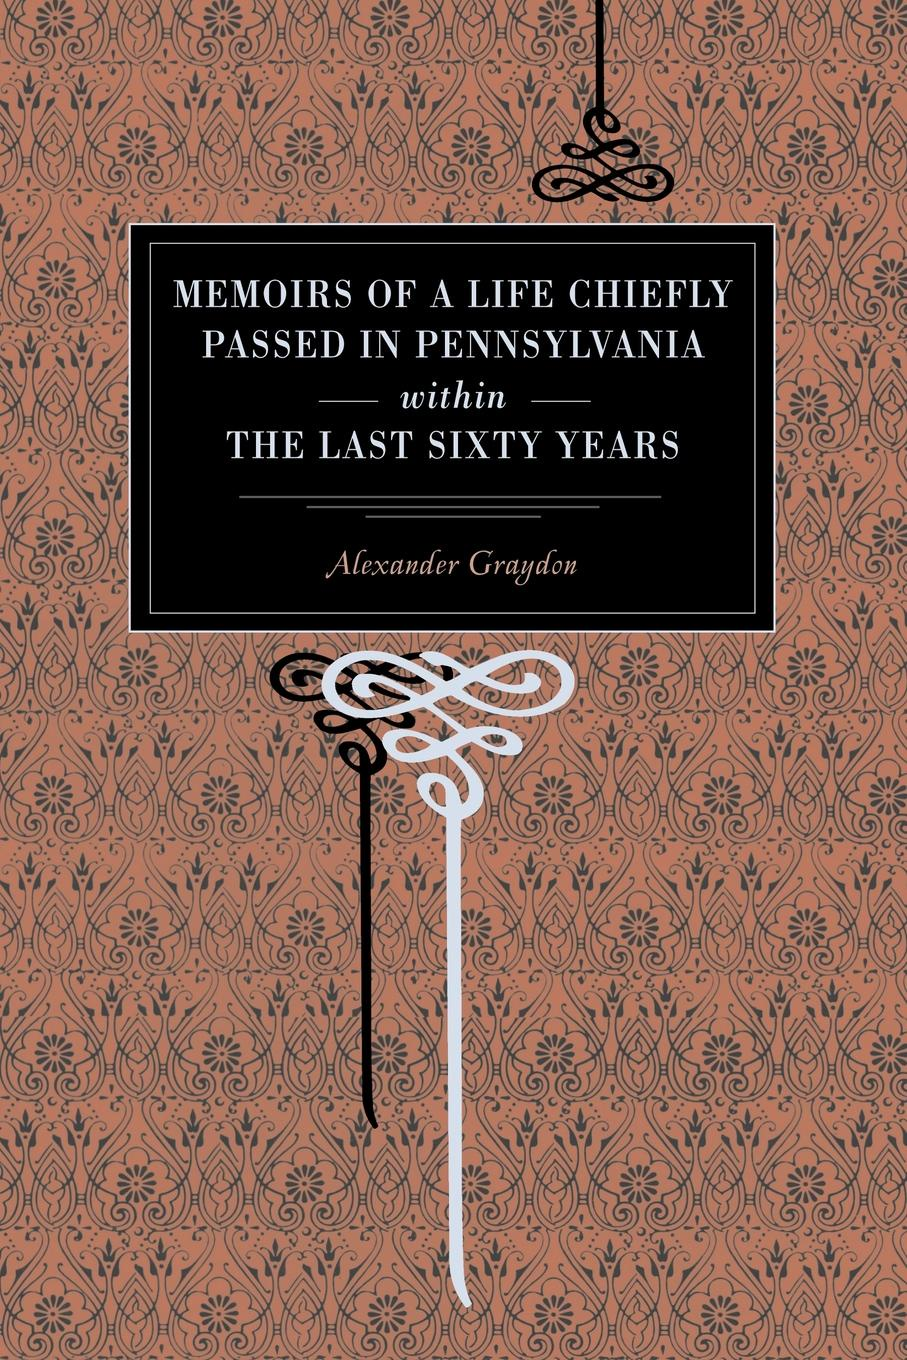 Фото - Alexander Graydon Memoirs of a Life Chiefly Passed in Pennsylvania Within the Last Sixty Years thomas henry memoirs of albert de haller m d compiled chiefly from the elogium spoken before the royal